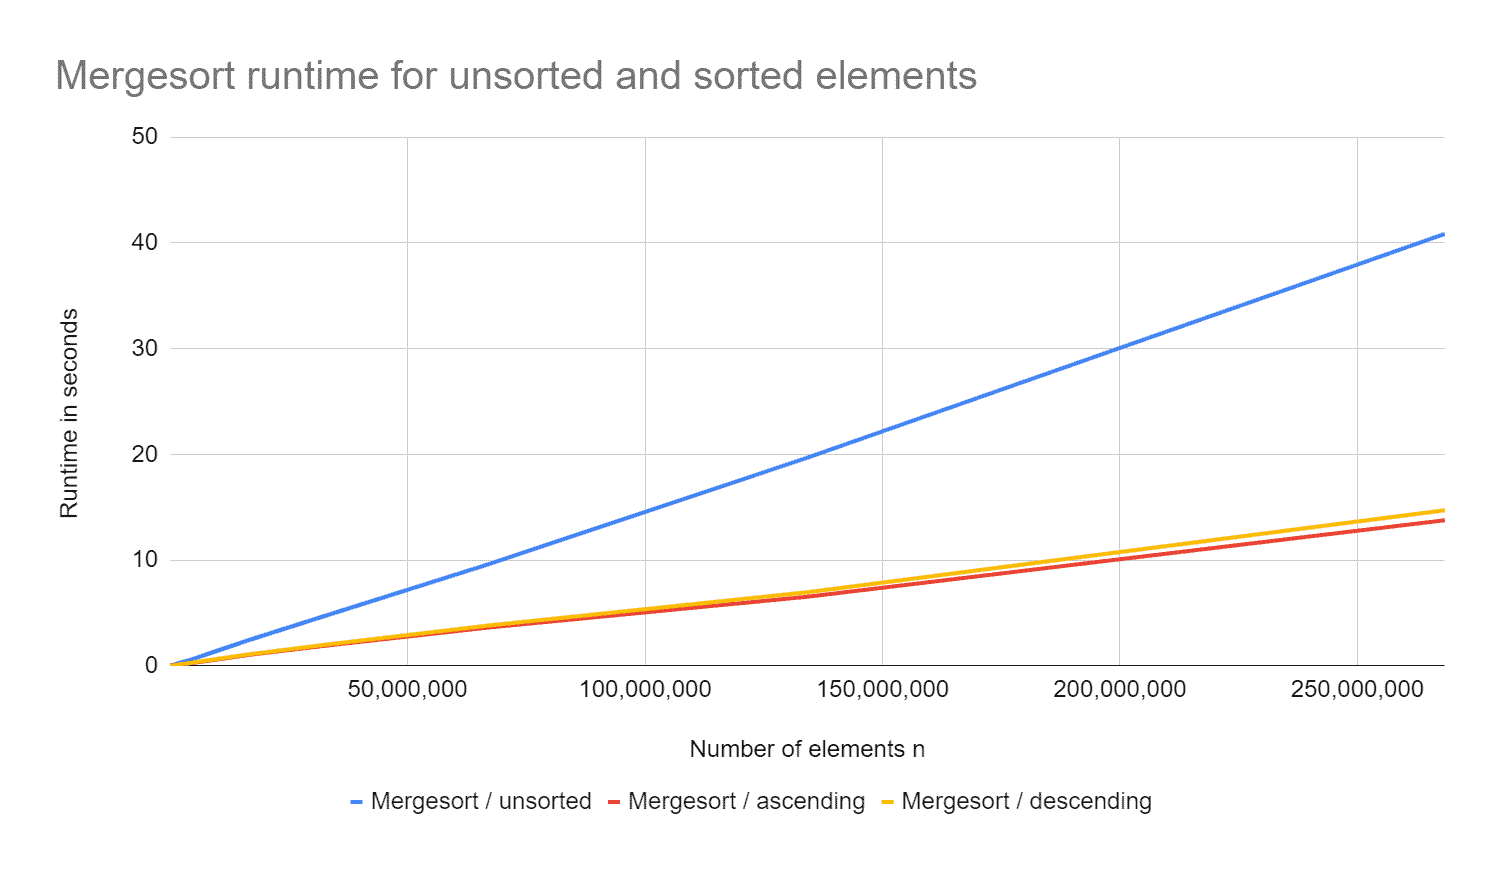 Merge Sort runtime for sorted and unsorted elements